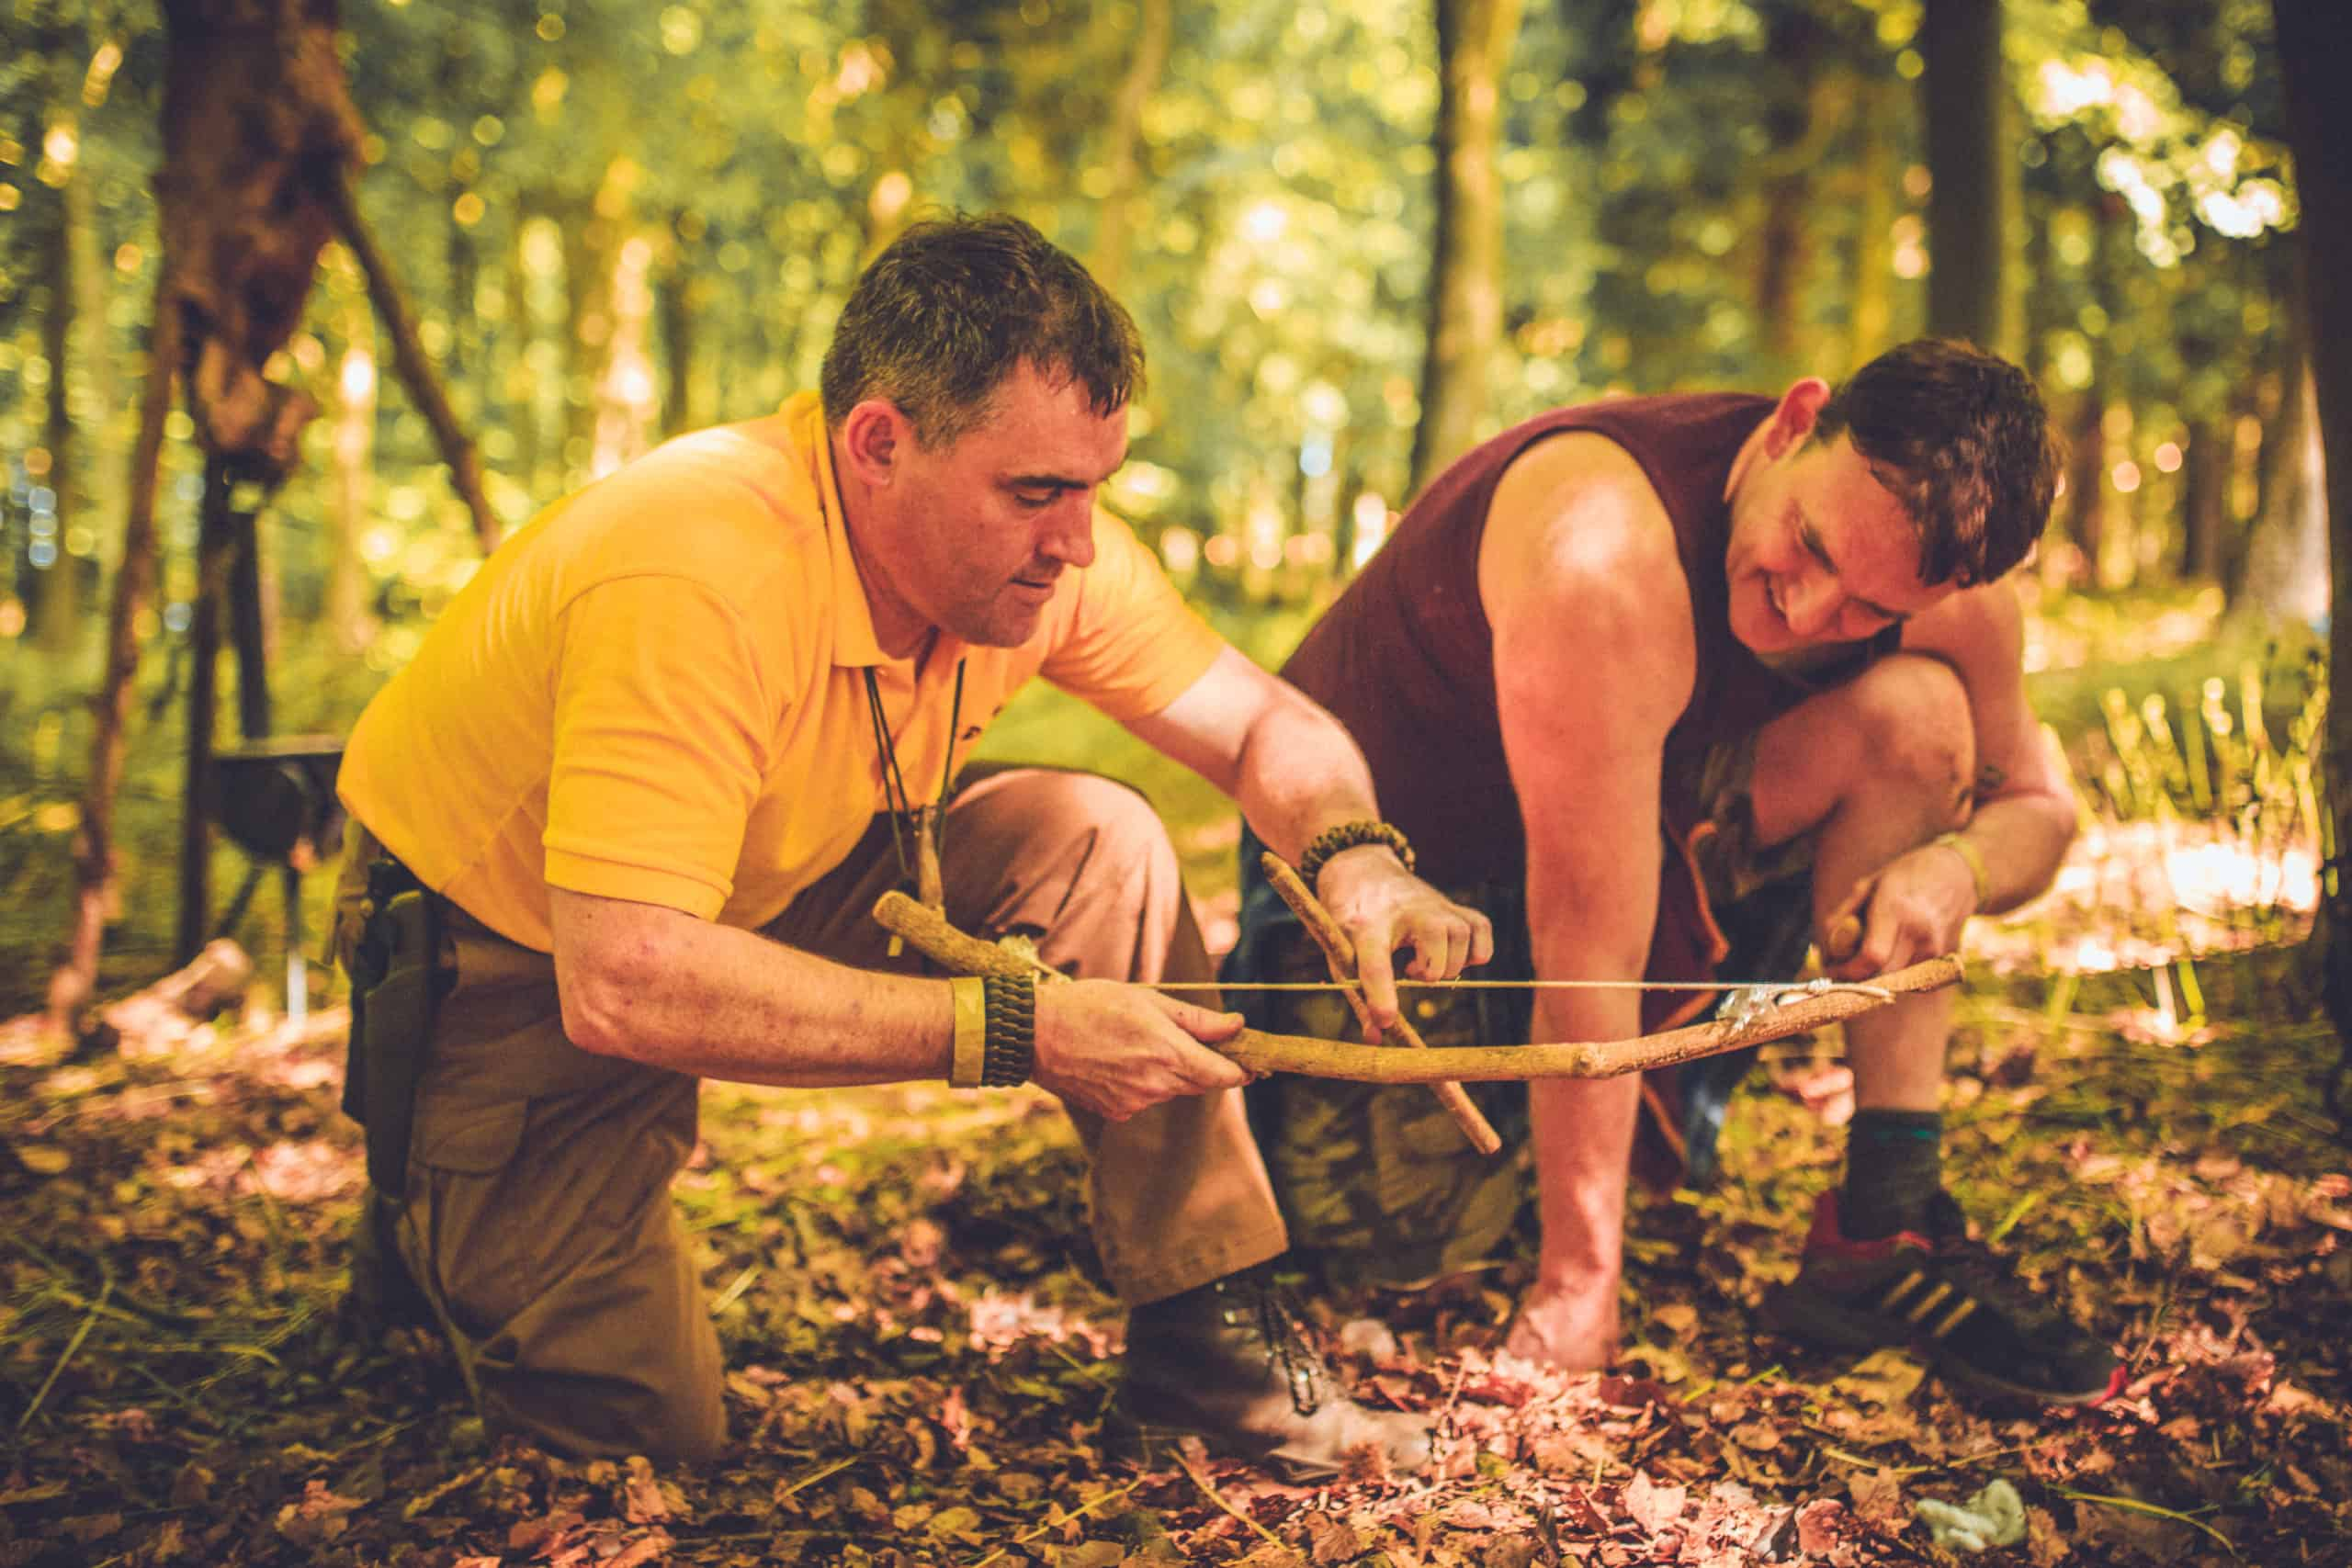 Instructor in yellow shirt showing camper how to make a bow. A summer weekend break in a forest near London and Kent. An outdoor woodland retreat featuring adventure activities, live music, DJs, parties and camping. Half summer adventure activity camp, half music festival, for adults only.